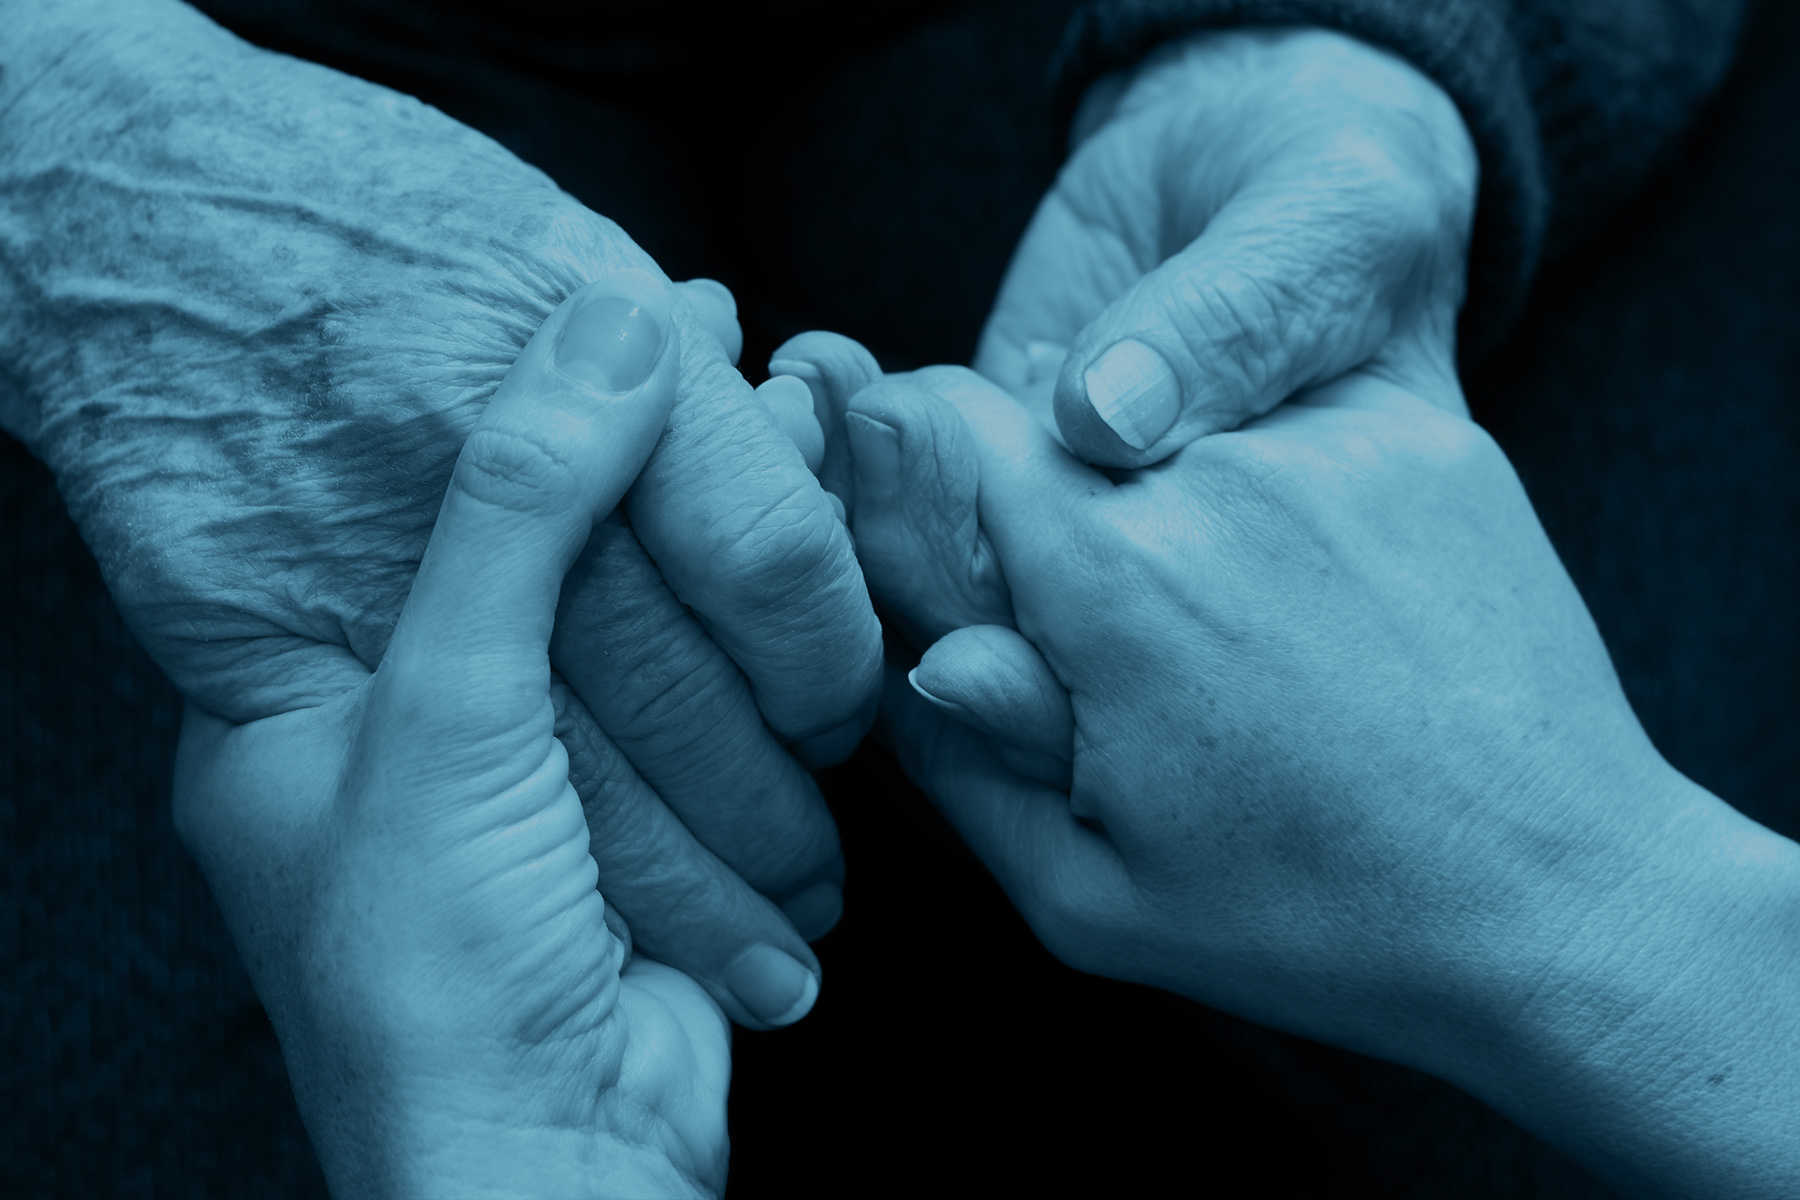 Dedicated lawyers to help with your Nursing Home Neglect and Abuse cases, Austin & Banks Law Firm, Injury Lawyers serving the Ada & Oklahoma City Area